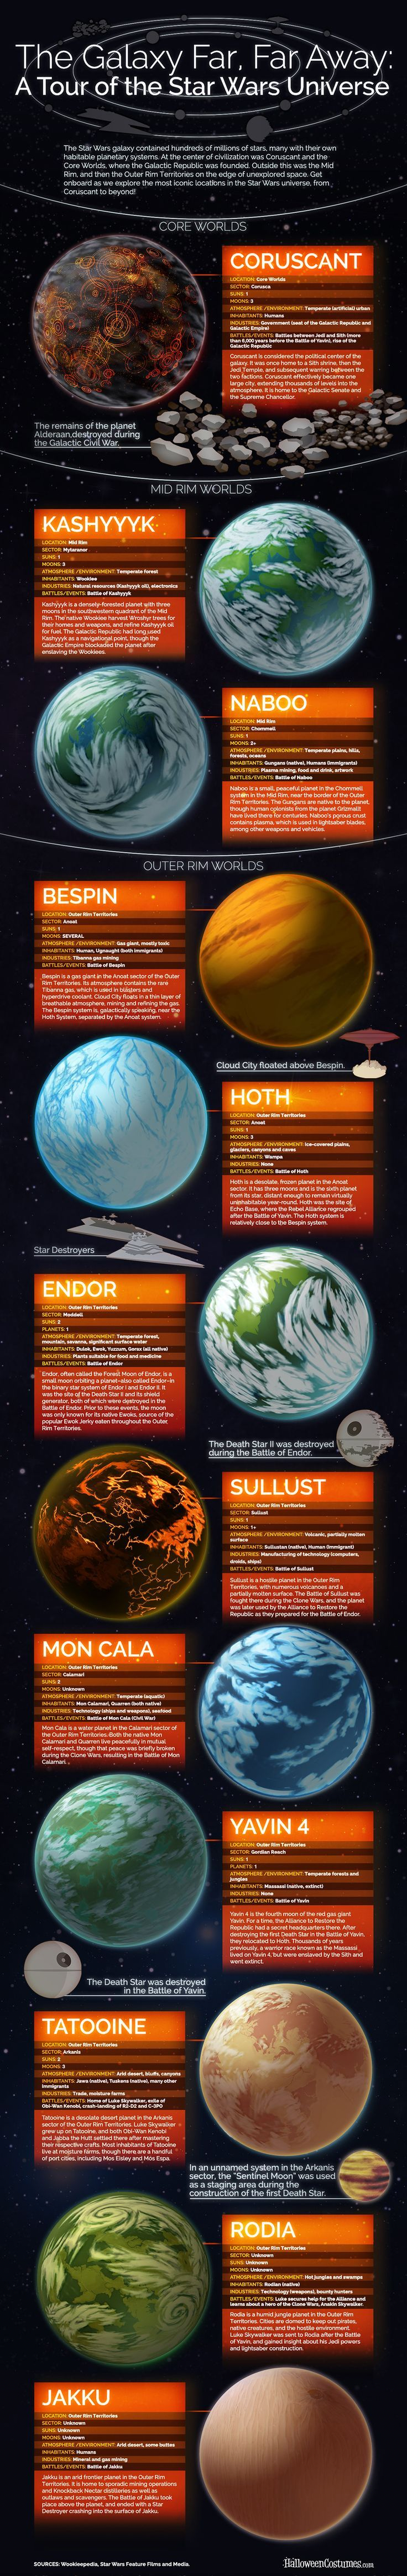 The Galaxy Far, Far Away: A Tour of the Star Wars Universe: